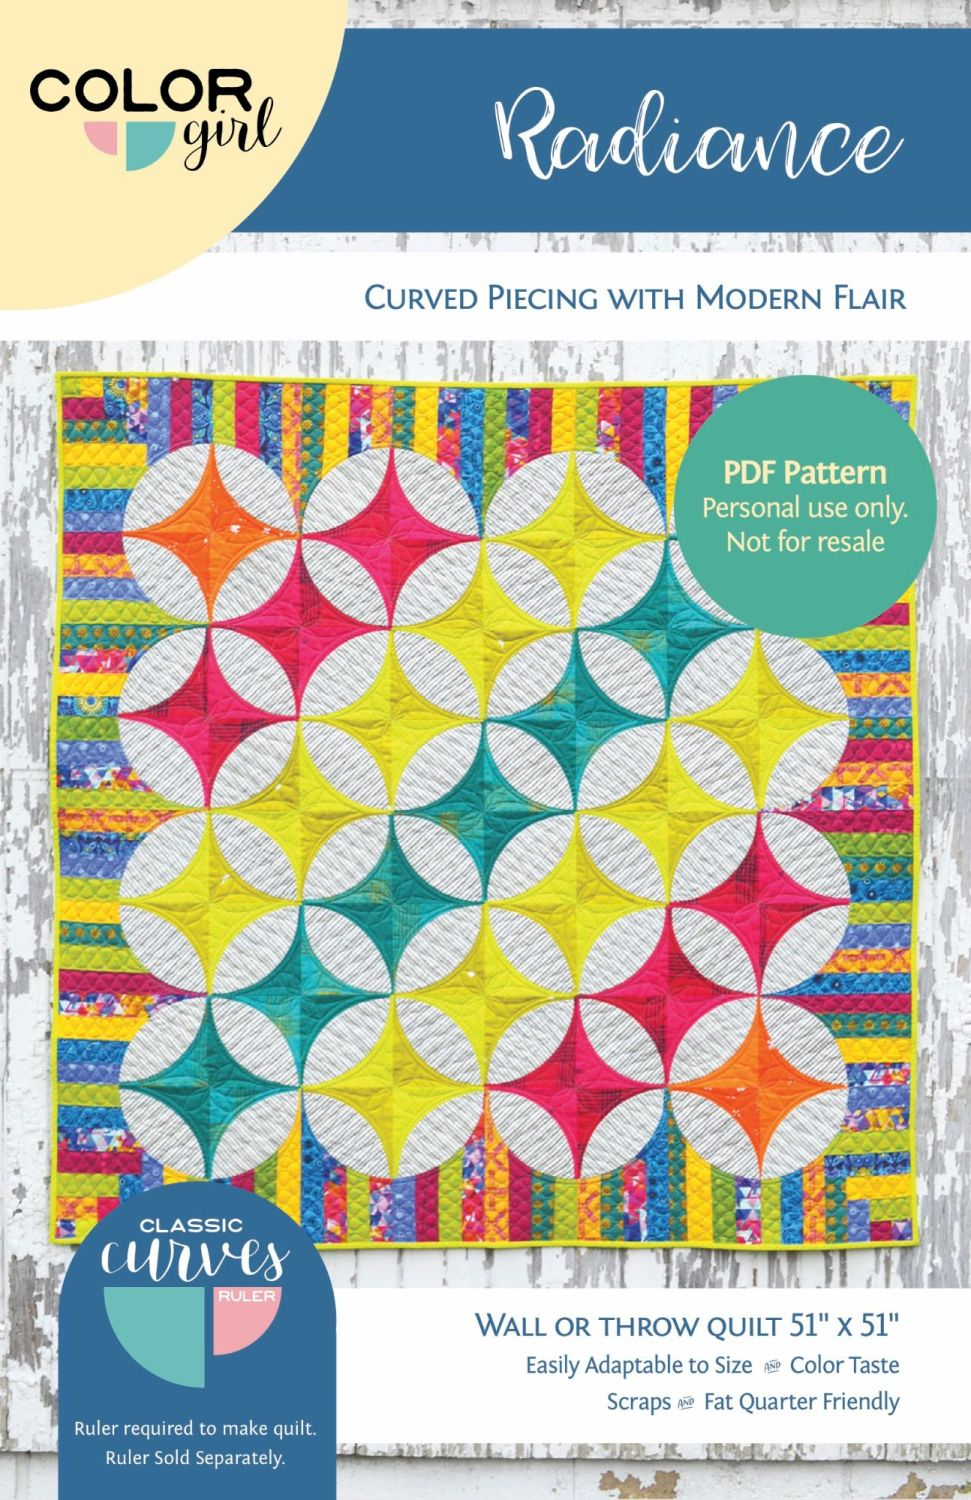 PRE-ORDER Color Girl Quilts Radiance Quilt Pattern